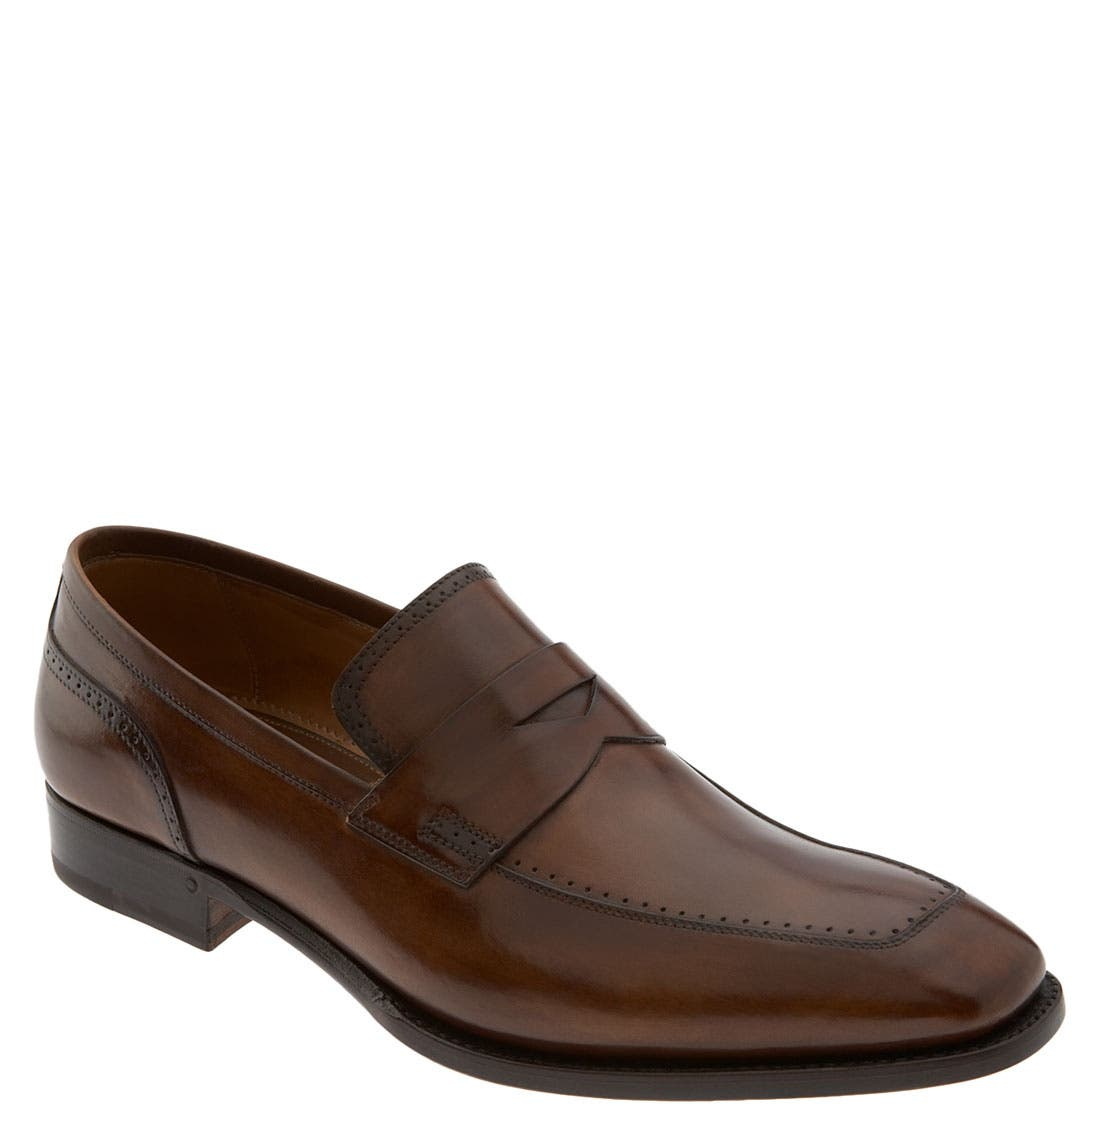 Alternate Image 1 Selected - Sassetti 'Trapani' Penny Loafer